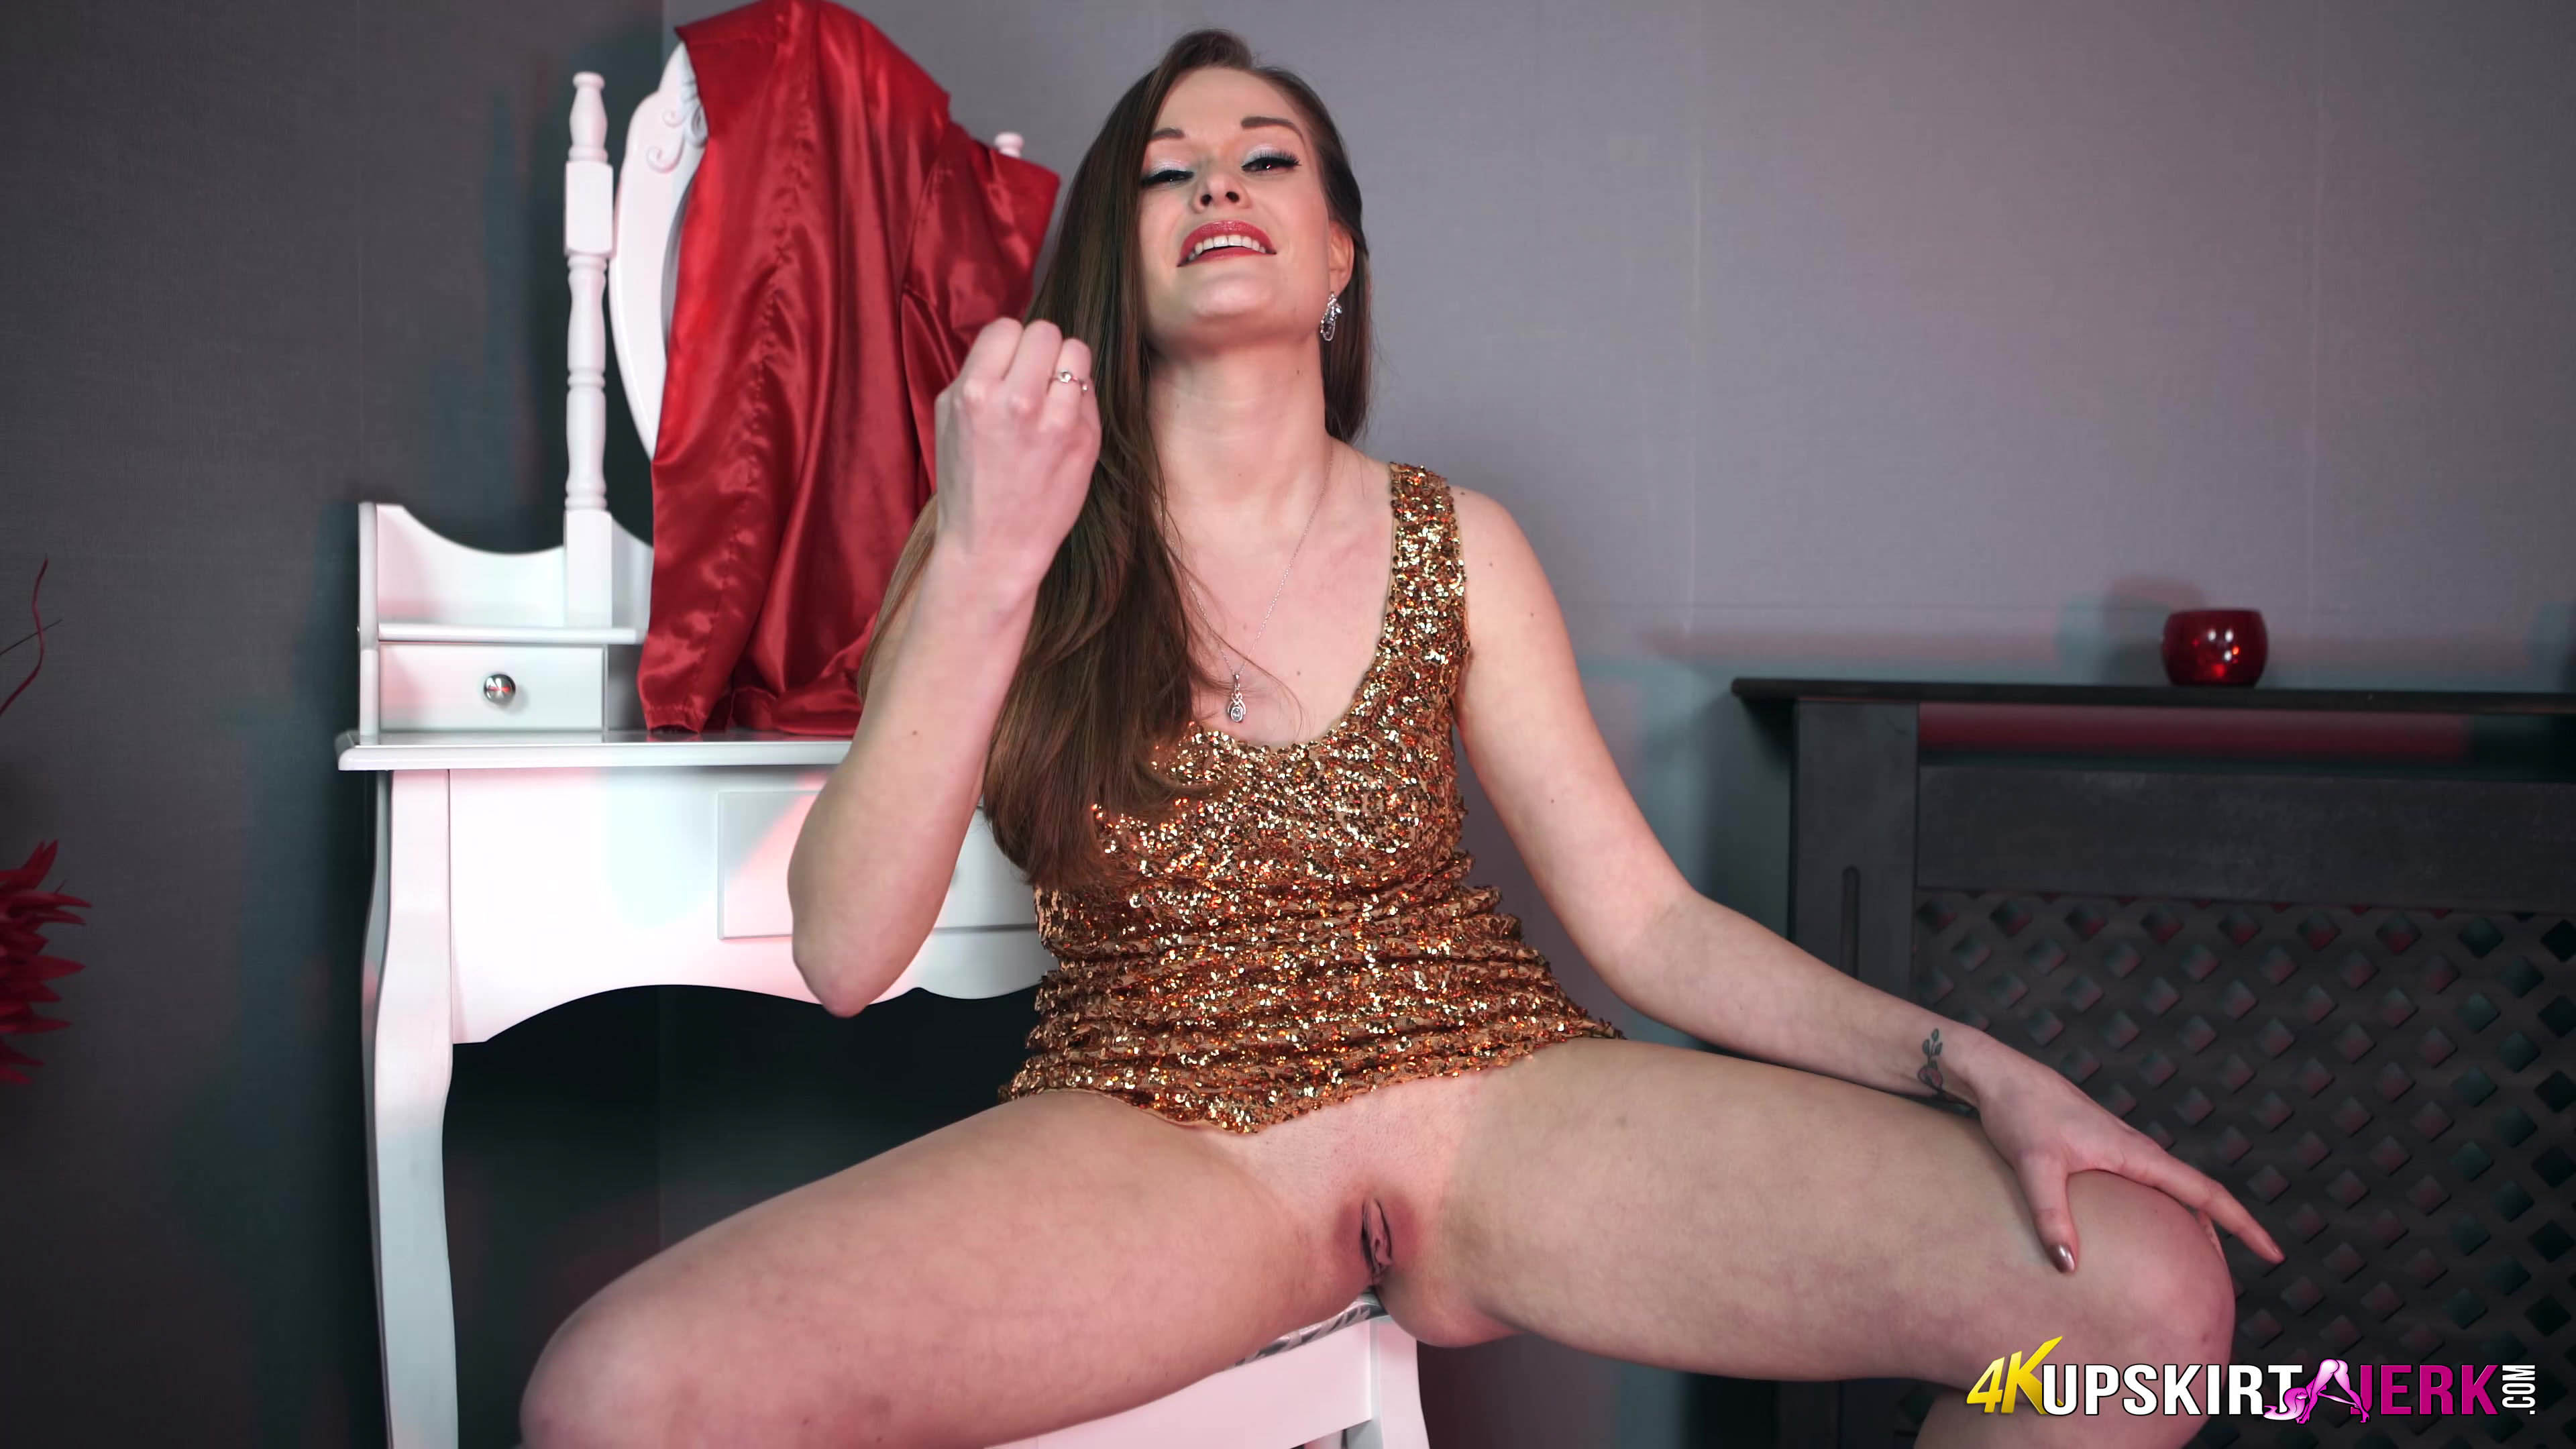 cute british secretary honour may teasing her boss without panties (upskirt flash) #2